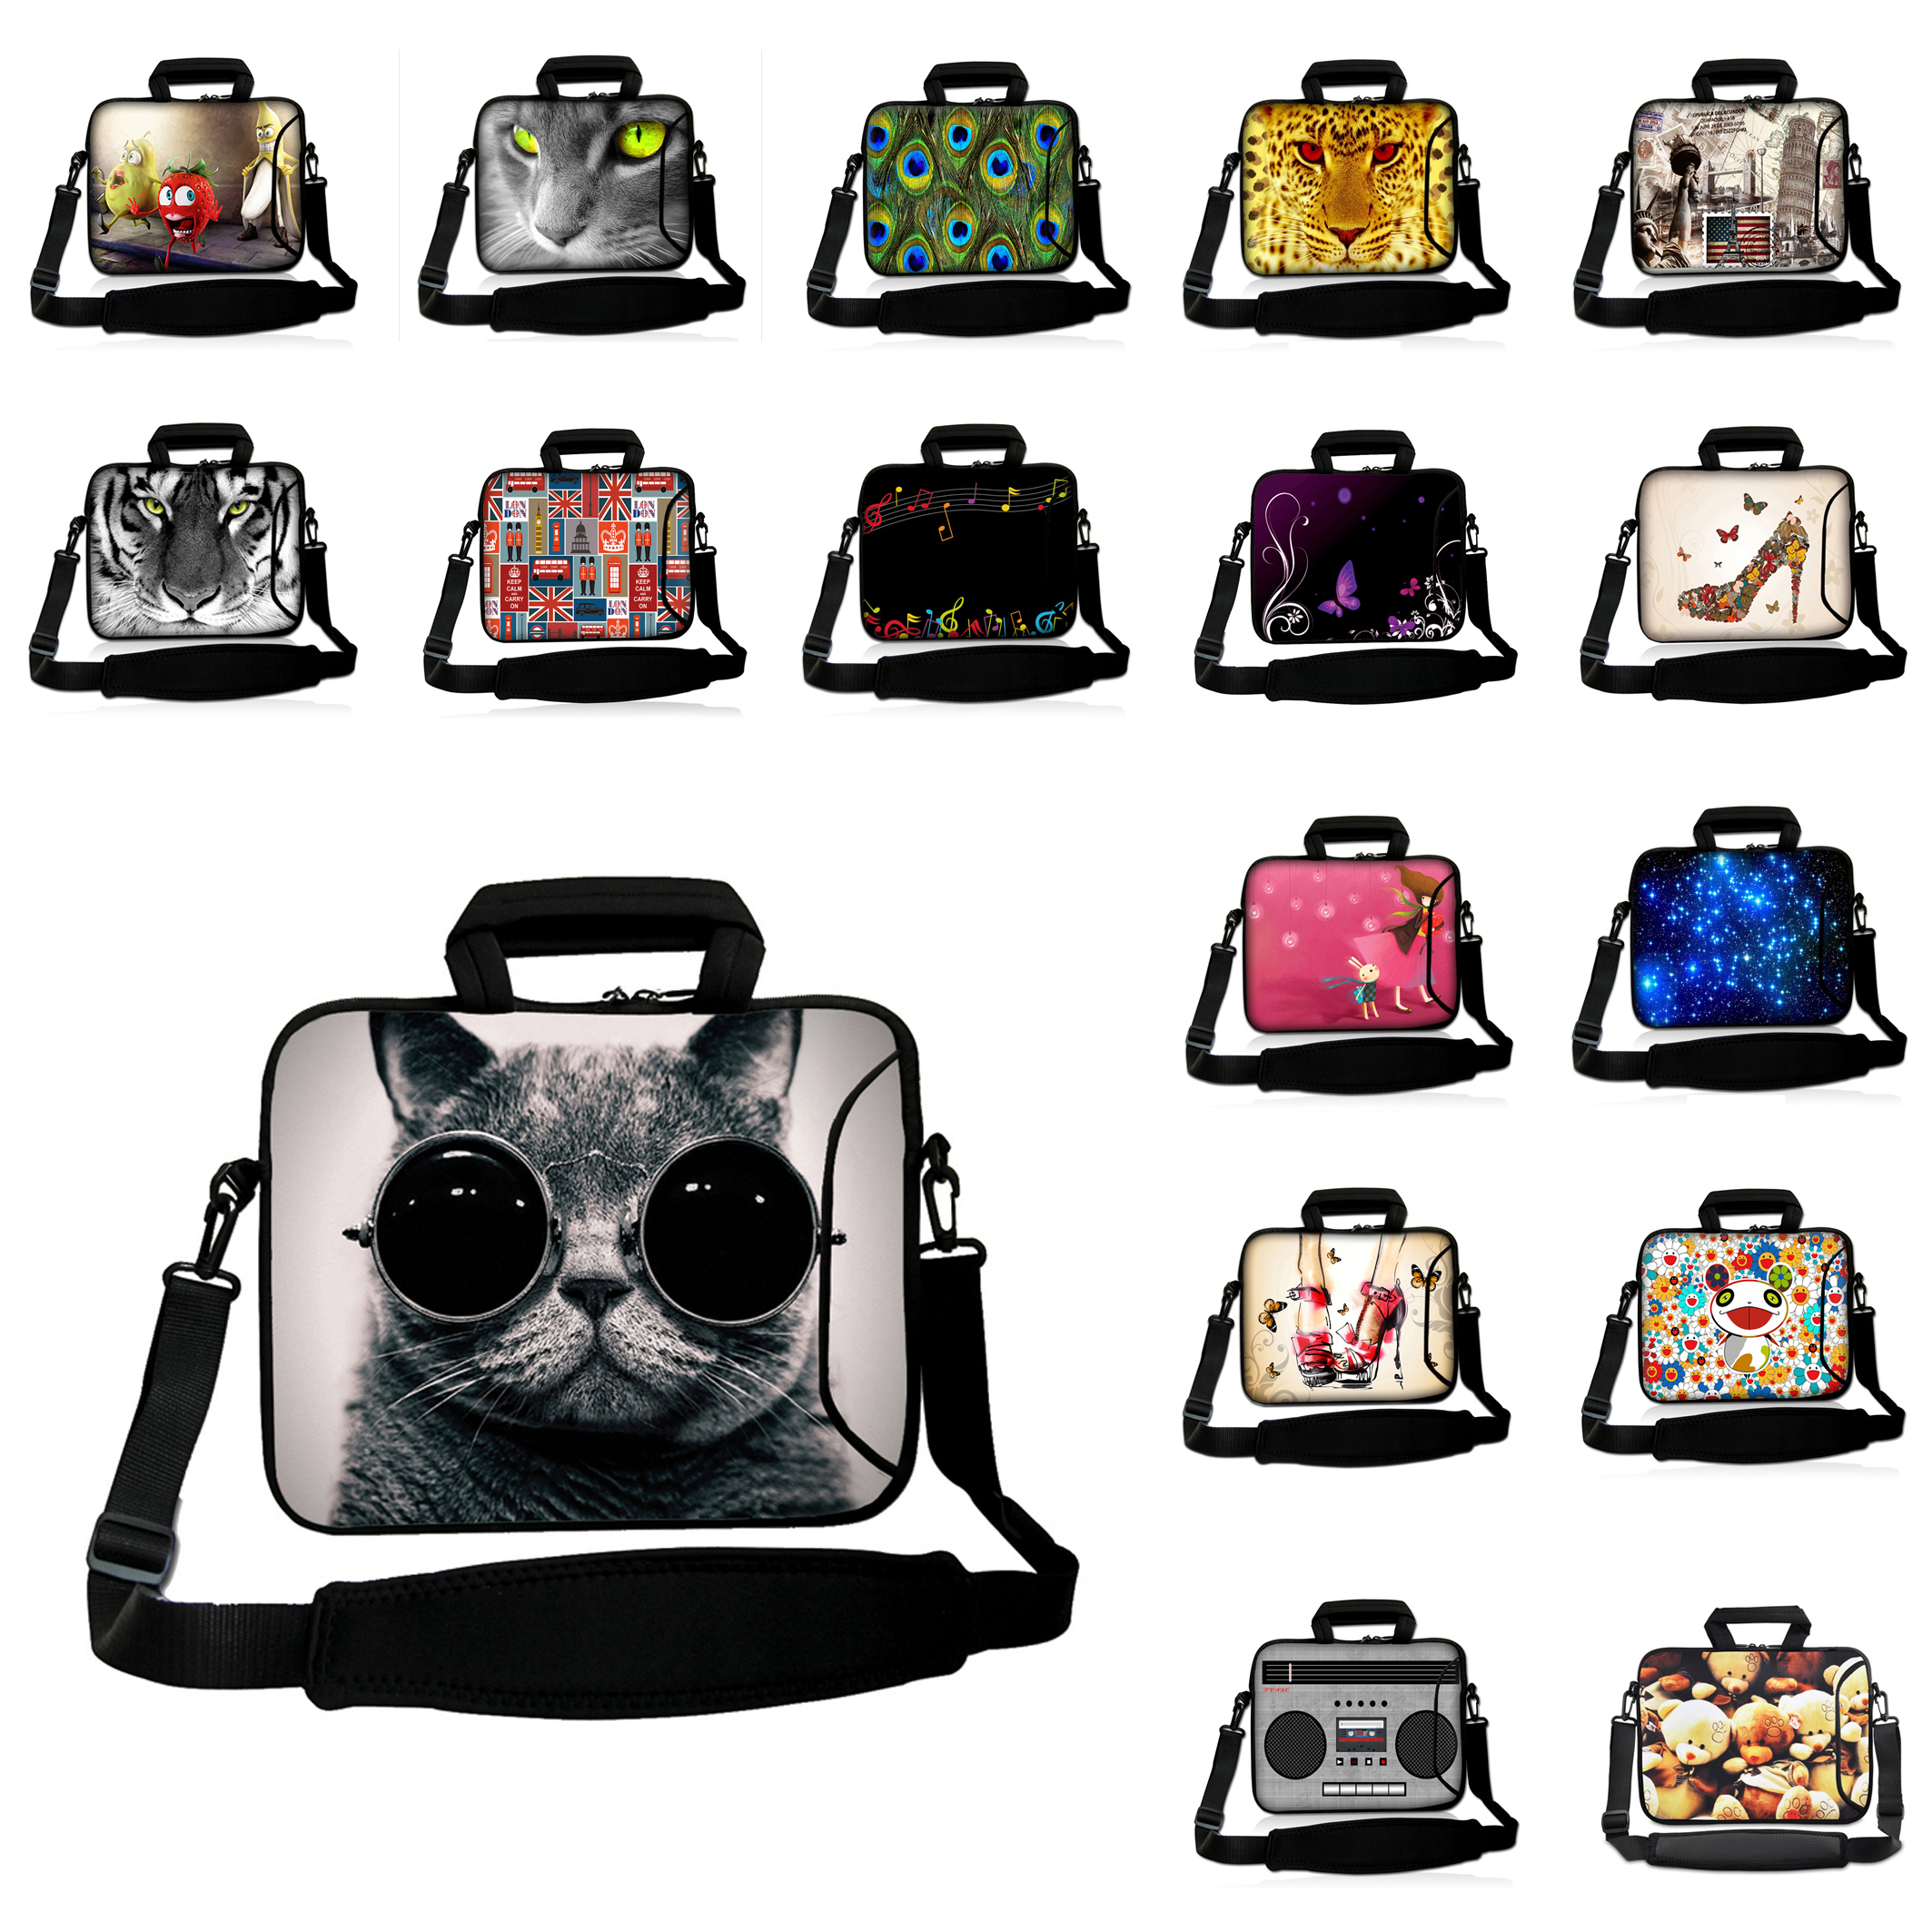 "Shoulder Laptop Bag 15.6 14 13.3 12 10"" Inch Protective Bags Cases + Handle Animals Neoprene Messenger Tablet Bags iPad 2 4"